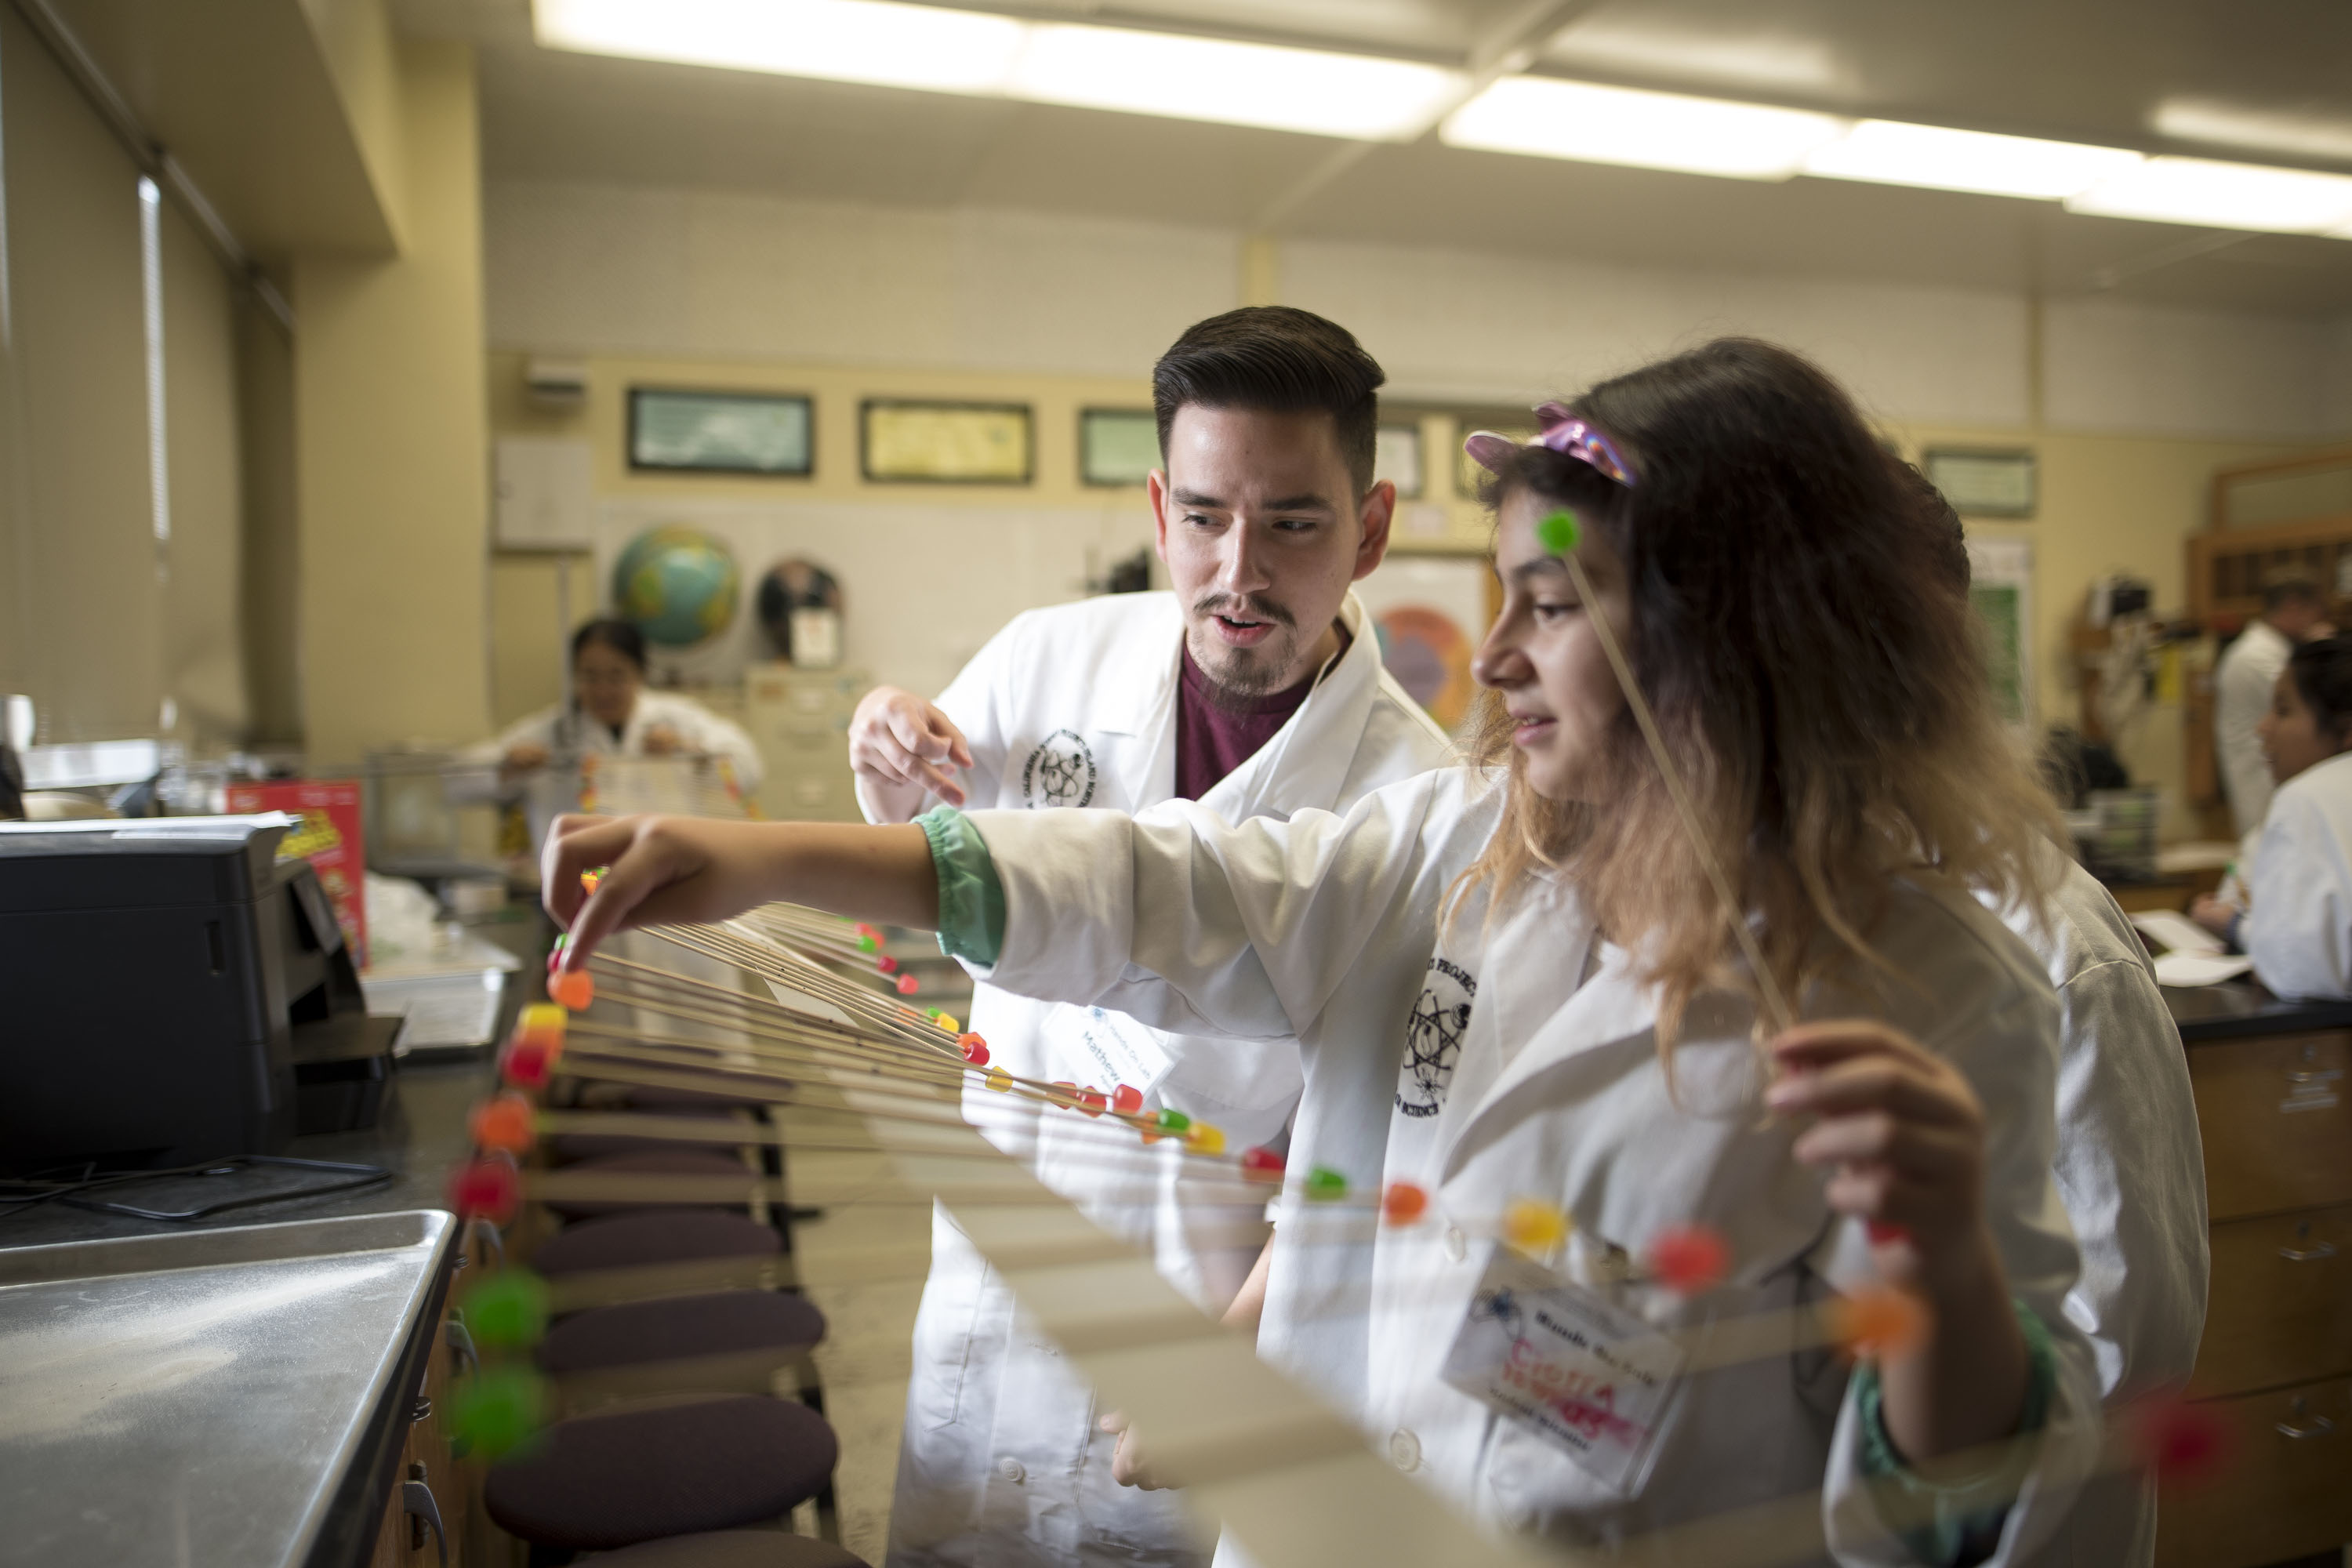 Male Chico State student working ona  science activity with a middle or high school female student.